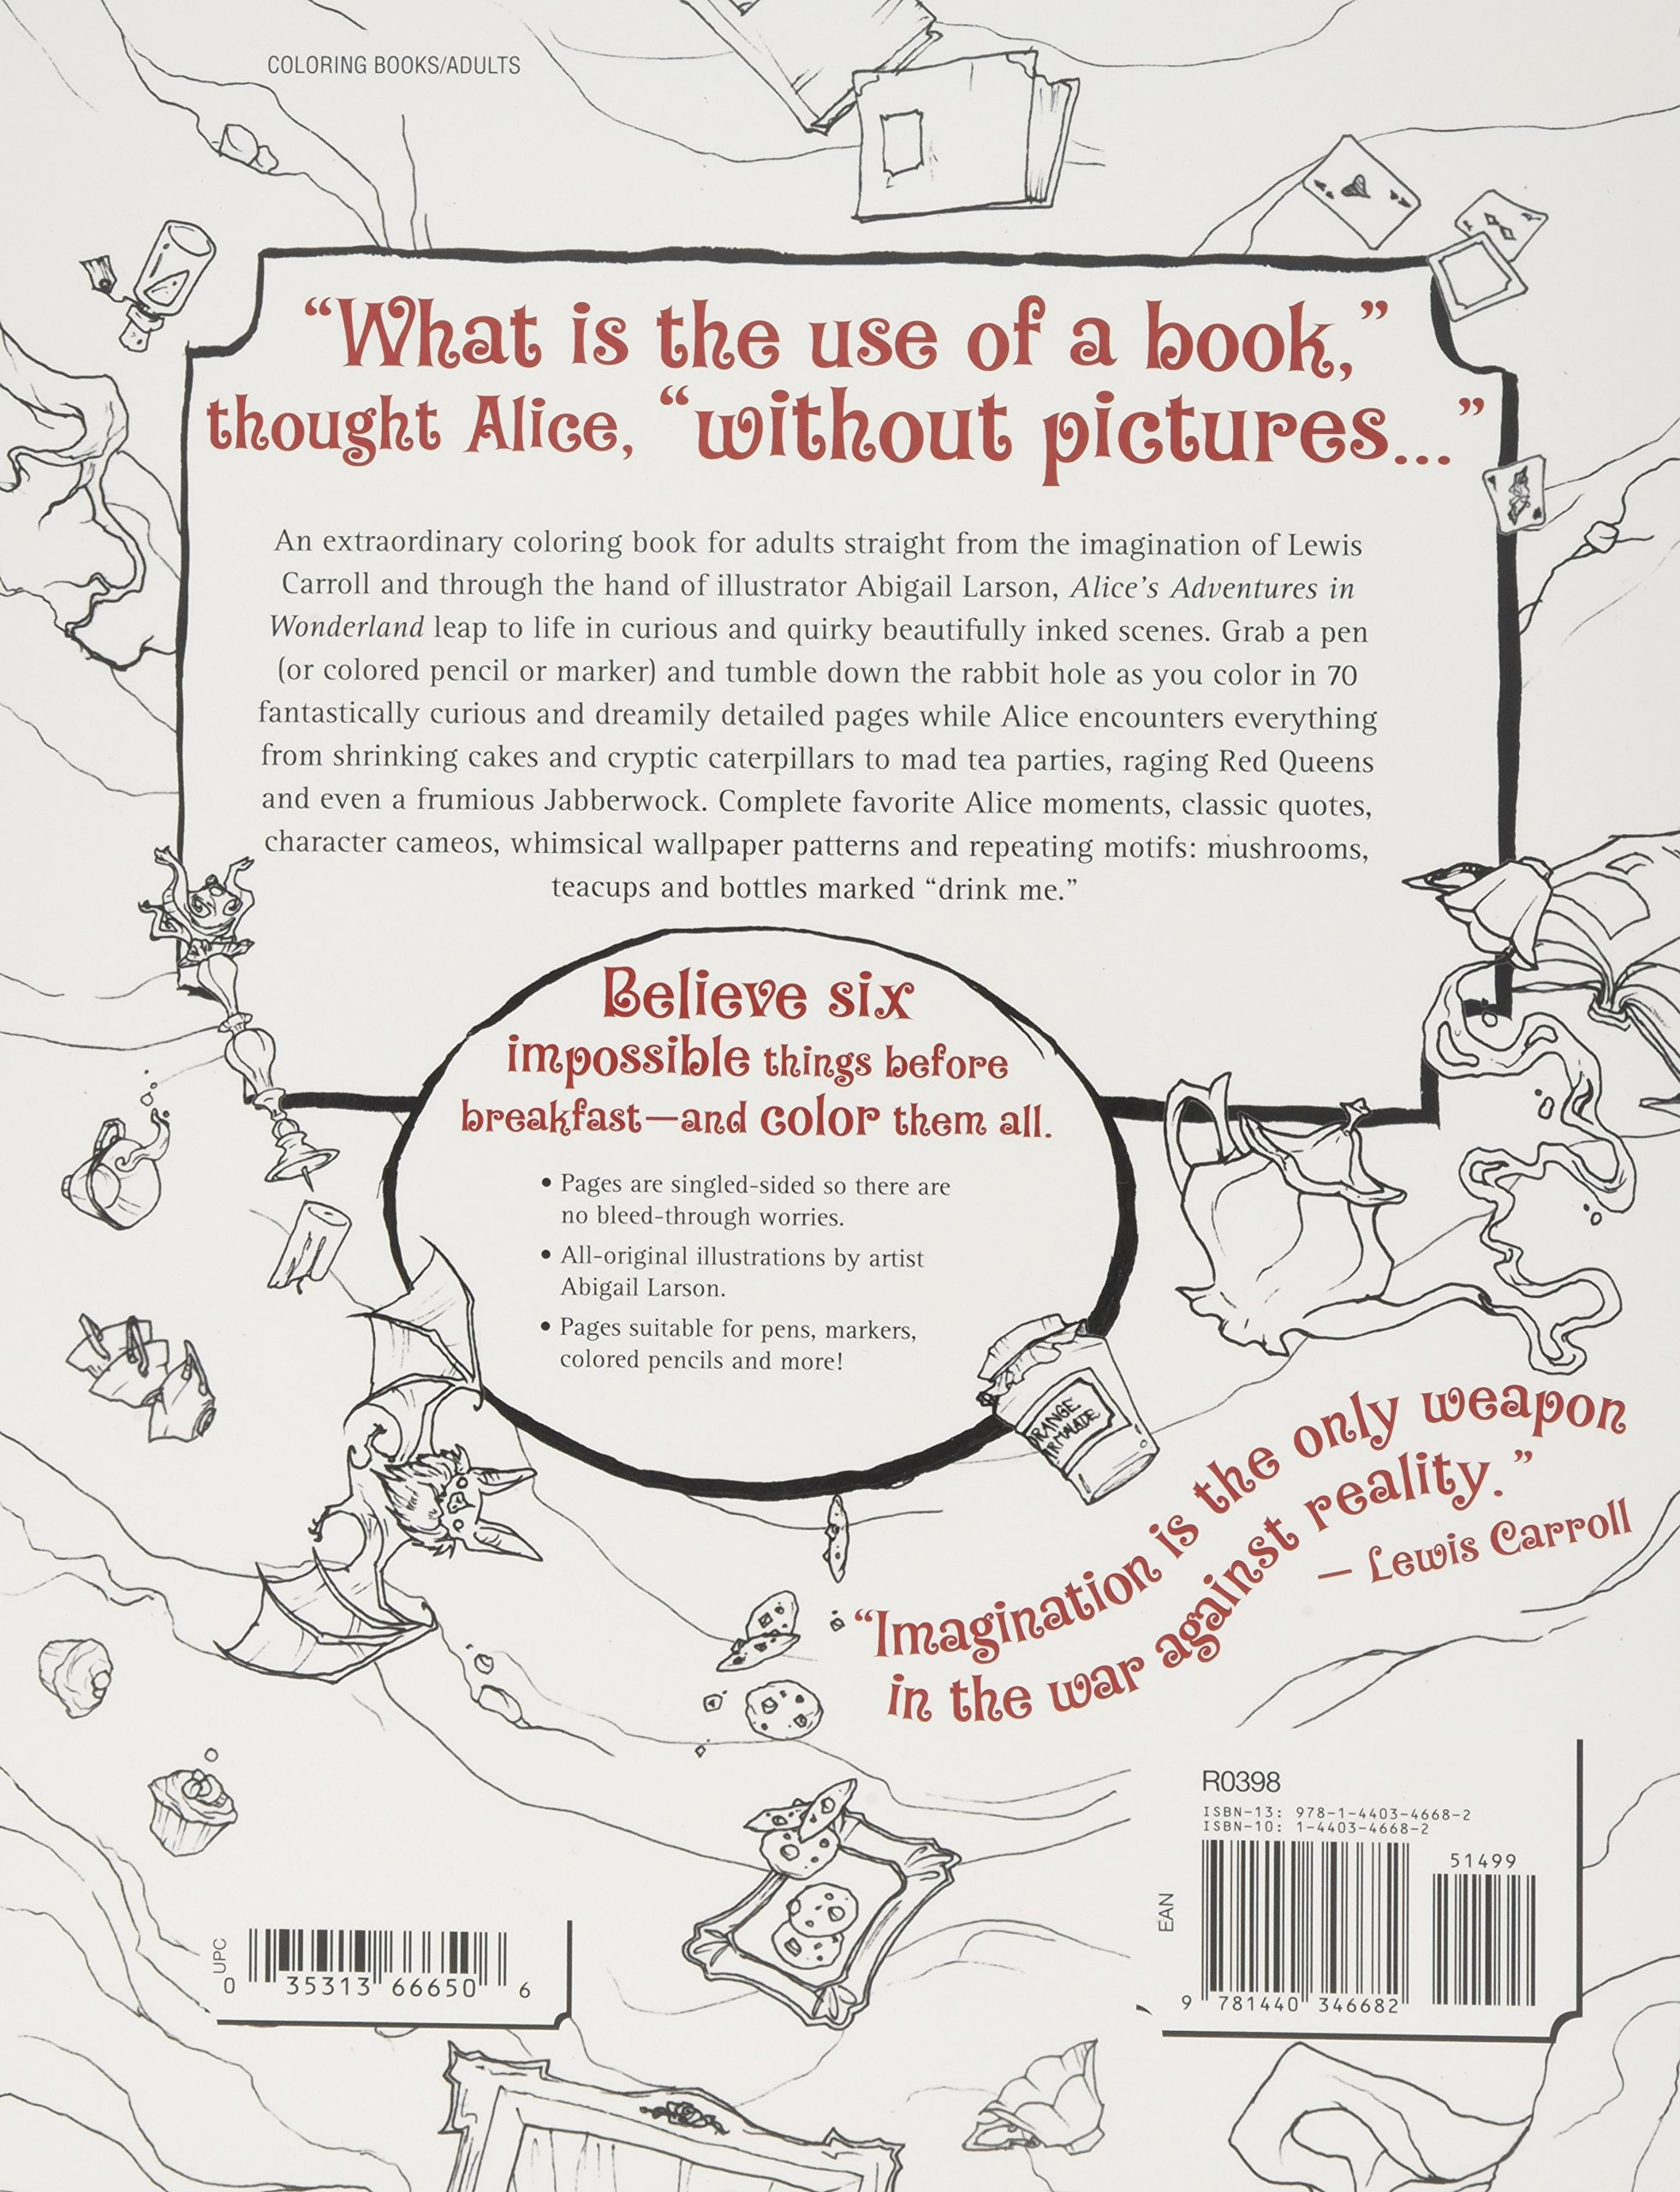 Amazon Alices Wonderfilled Adventures A Curious Coloring Book For Adults 0035313666506 Abigail Larson Books